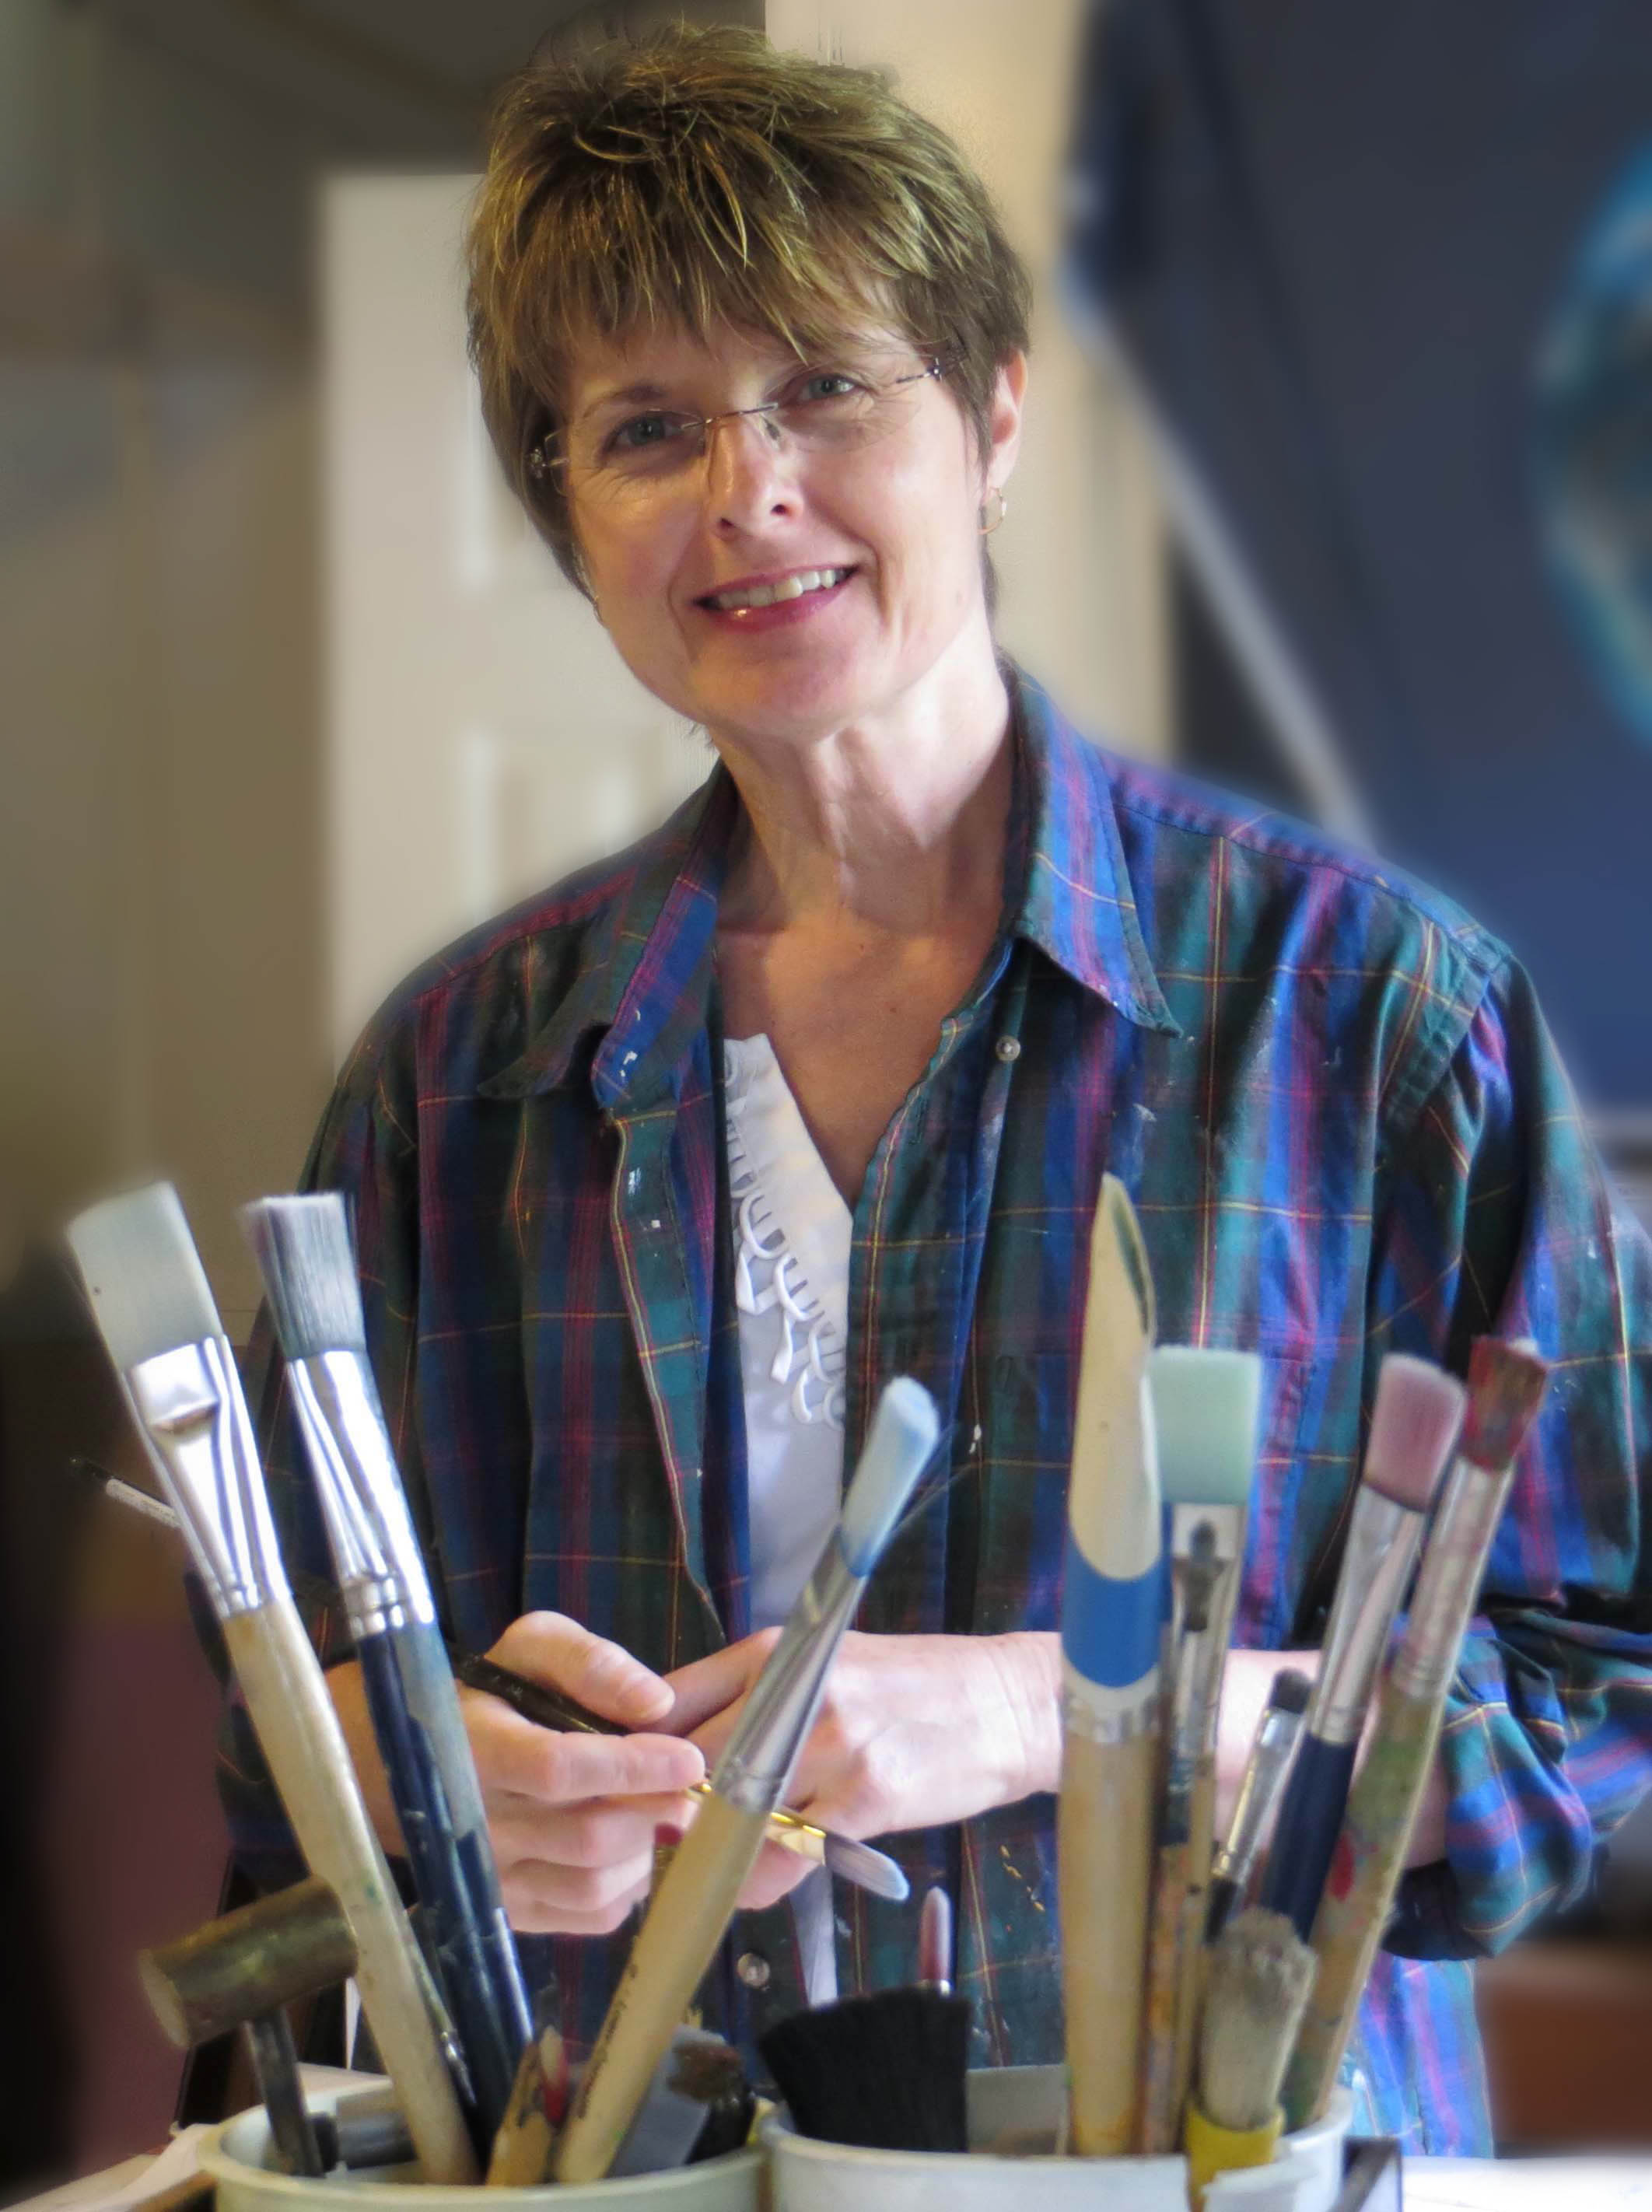 Artist Janet Fox in her art studio